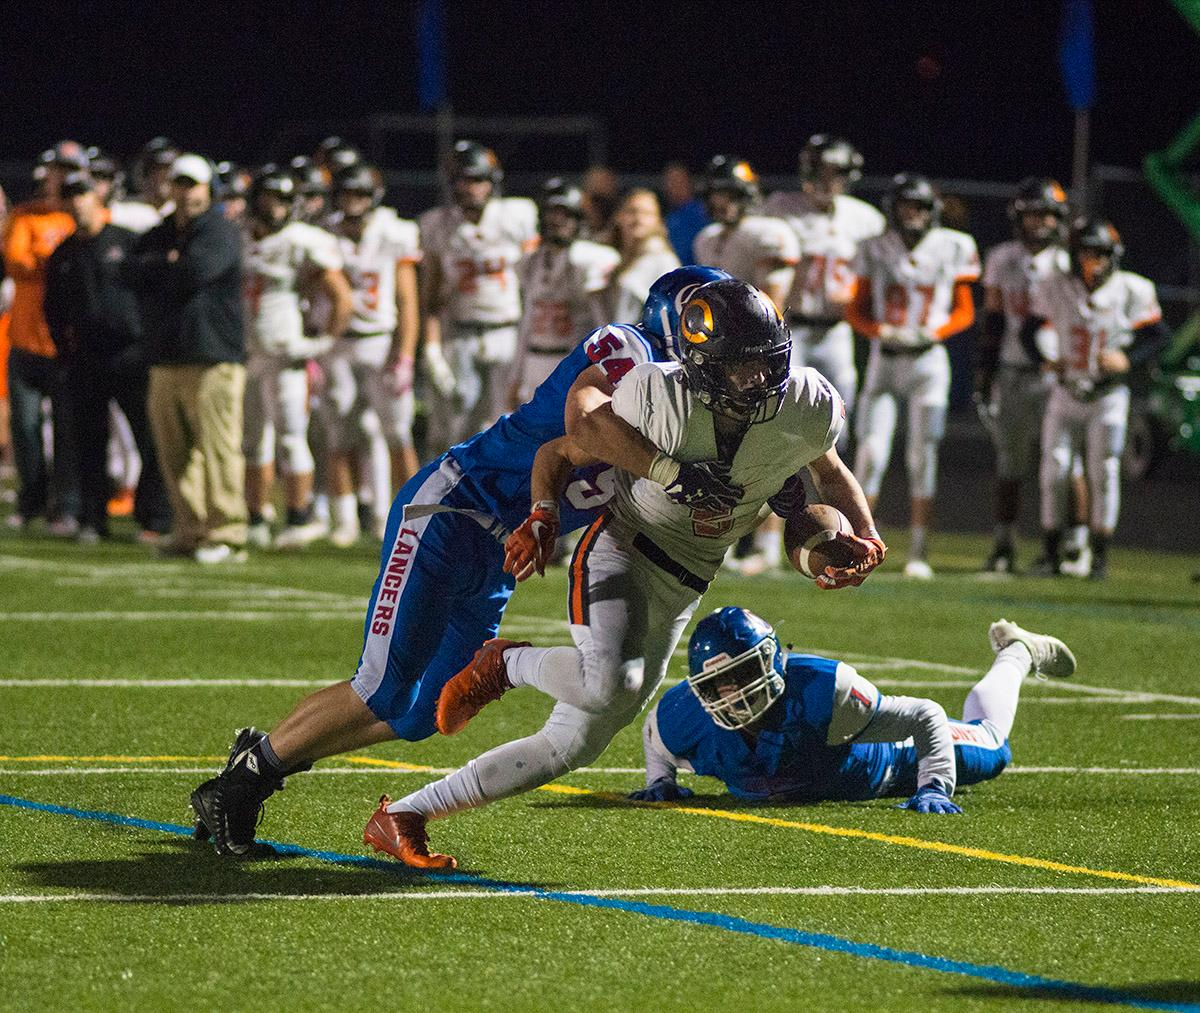 Crater Comets Cade Weaver (#5) attempts to carry the ball past Churchill Lancers defense. Churchill defeated Crater 63-21 on Friday at their homecoming game. Churchill remains undefeated with a conference record of 9-0. Photo by Rhianna Gelhart, Oregon News Lab